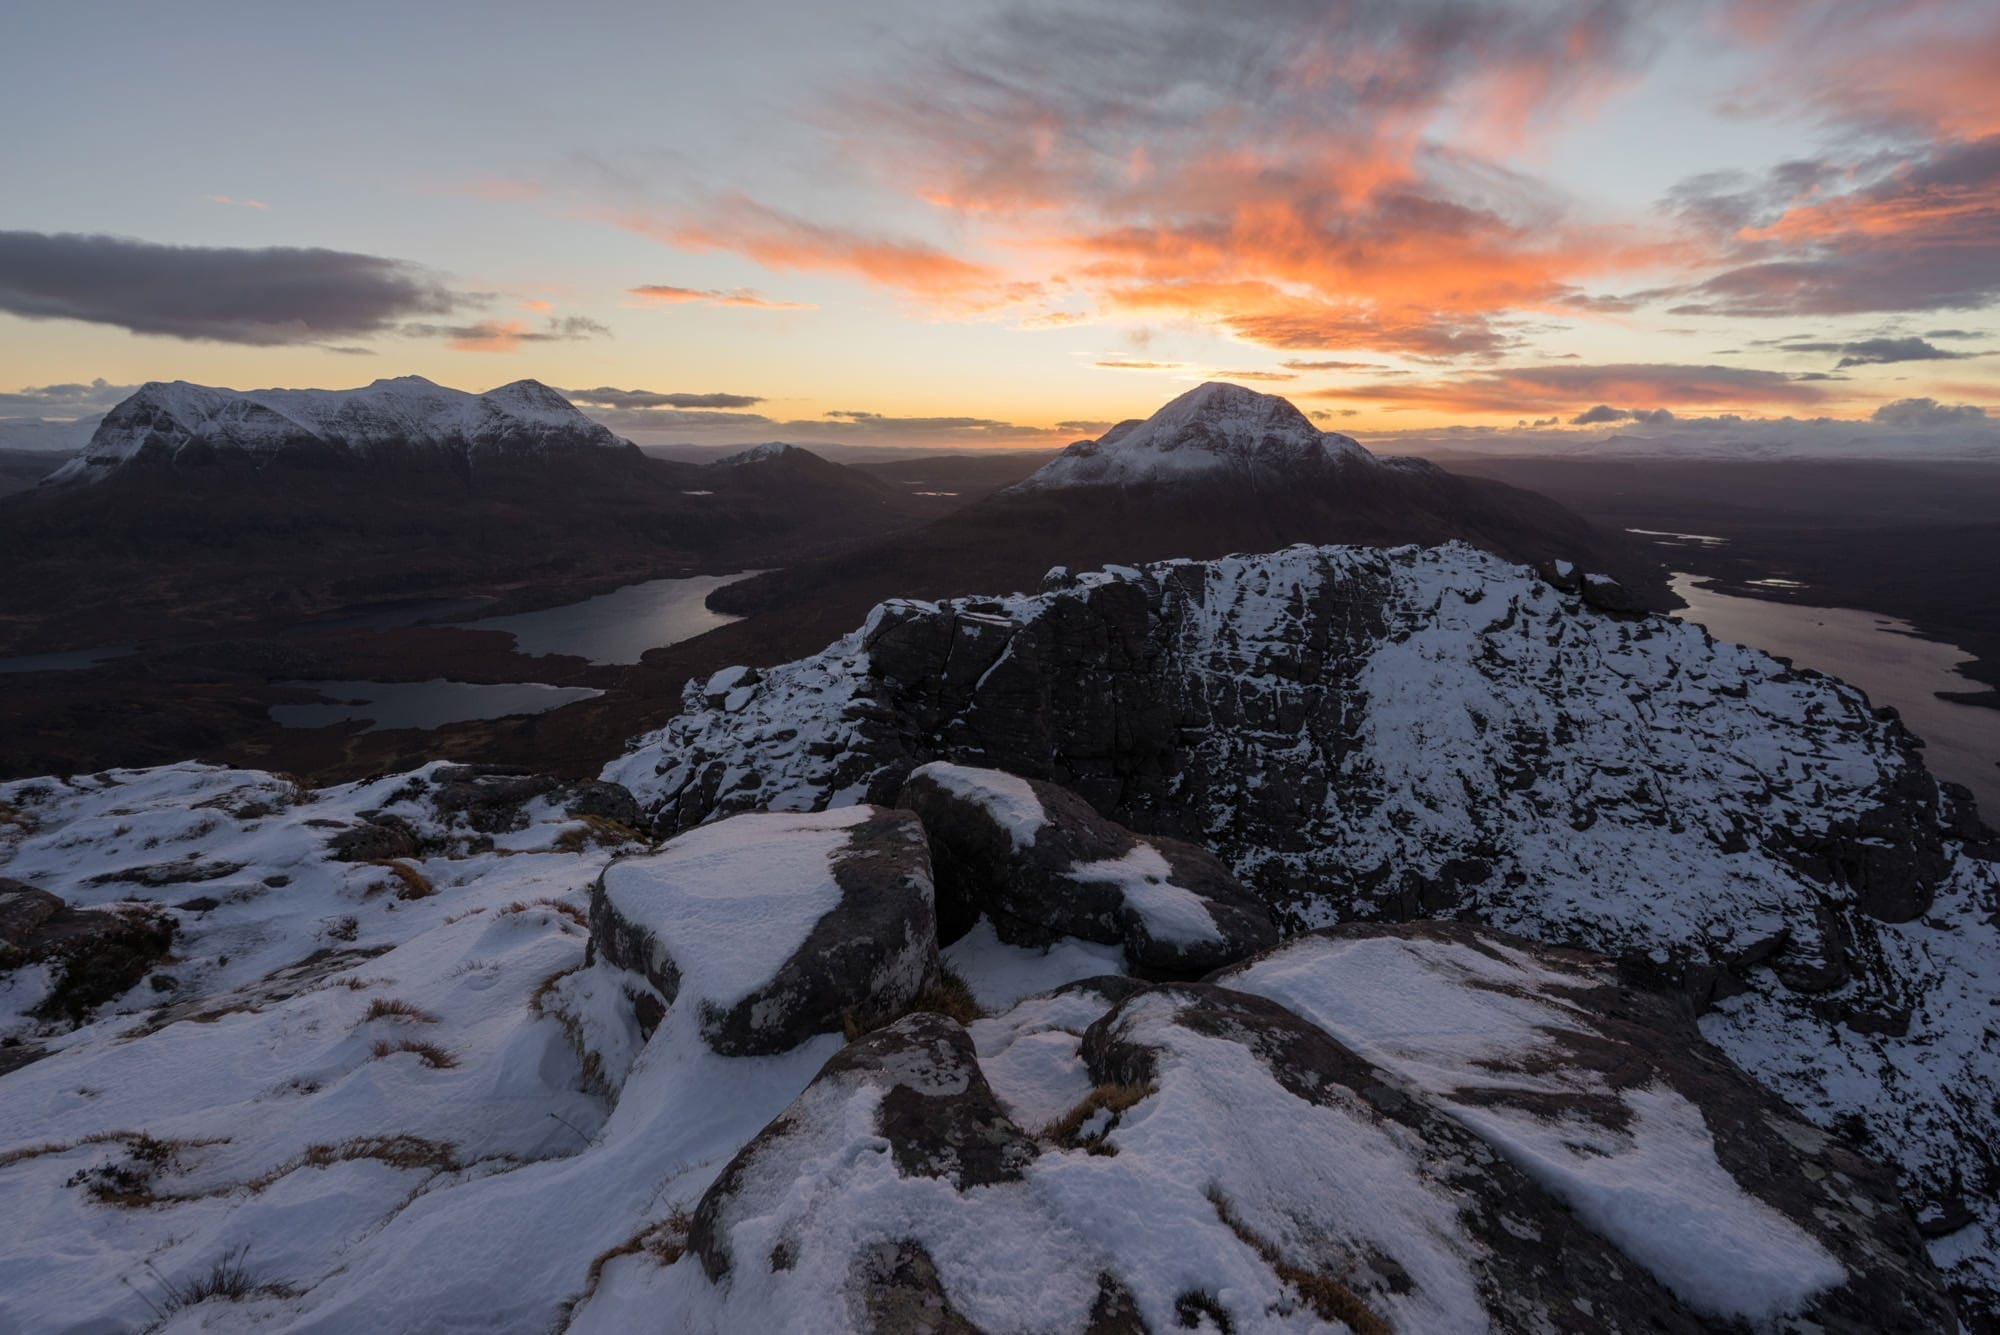 Stac Polliadh Sunrise - Scotland Wild Camping Photography Workshop